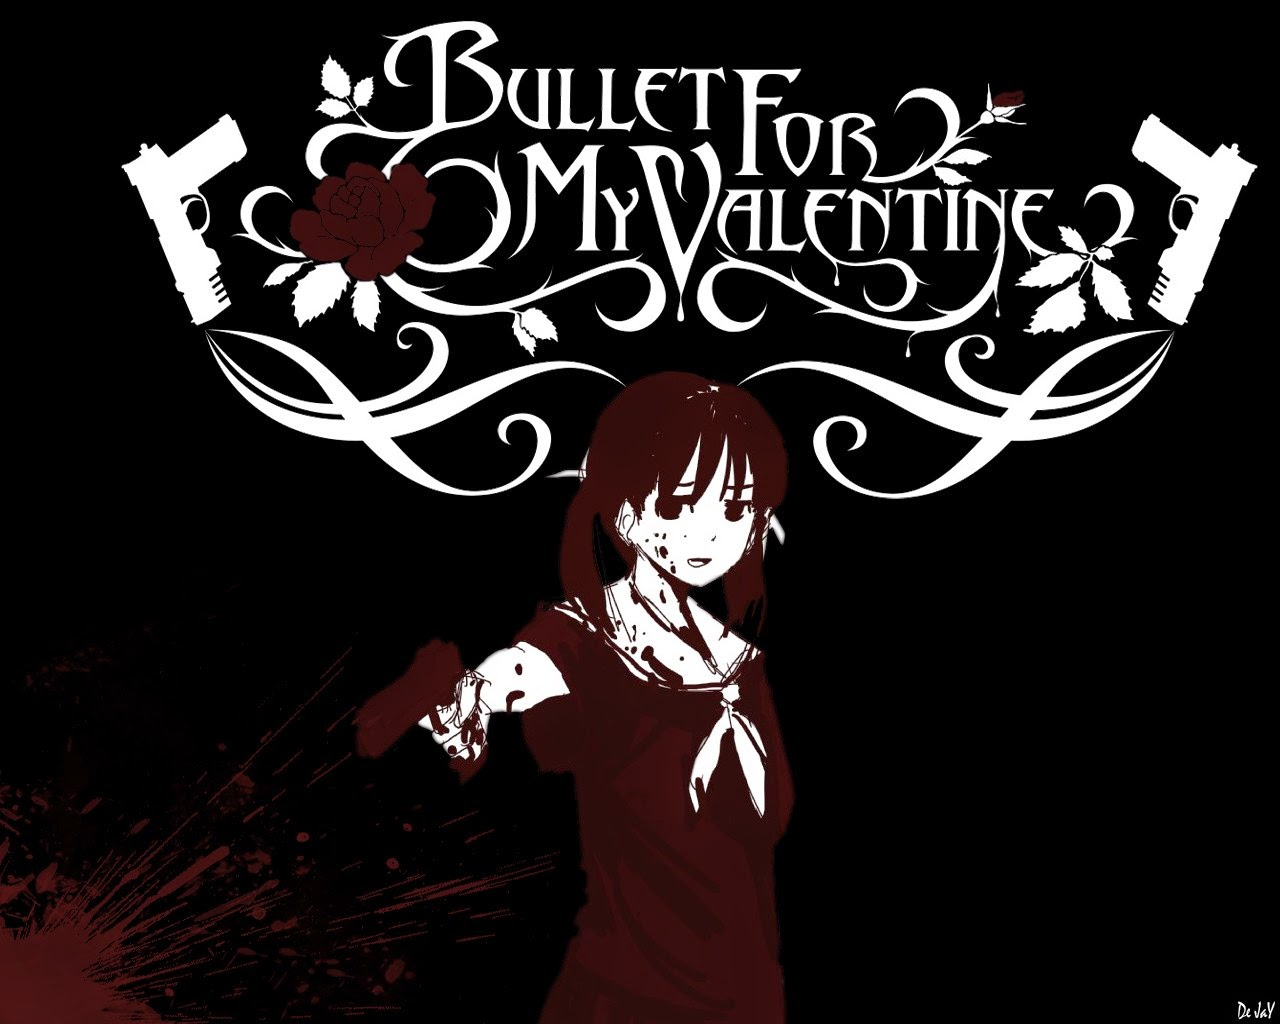 Bullet for my valentine tears dont fall acoustic argo putra blogs bullet for my valentine tears dont fall acoustic voltagebd Image collections